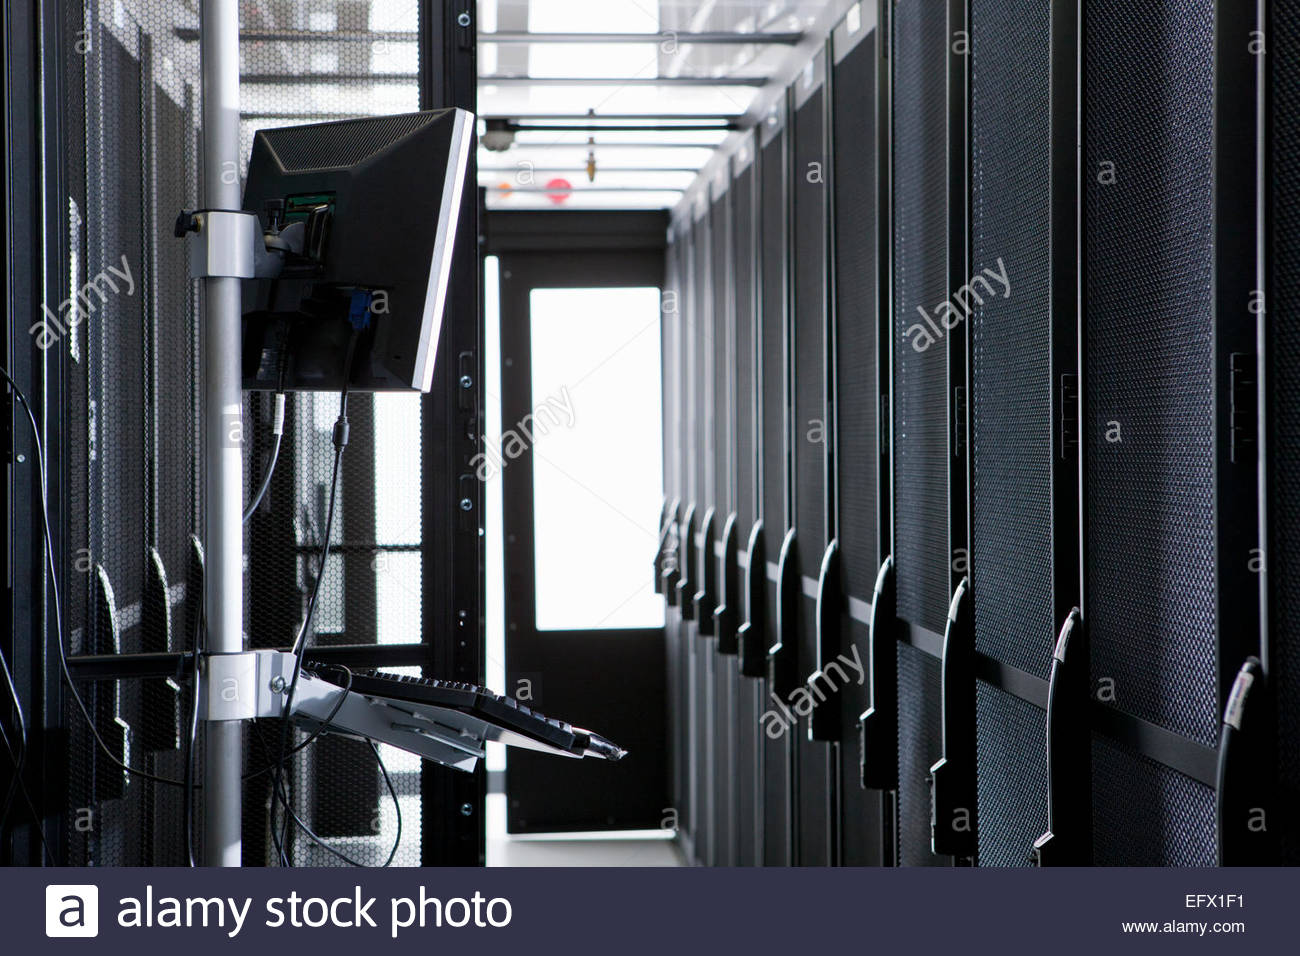 Portable computer in aisle of server storage cabinets Stock Photo ...